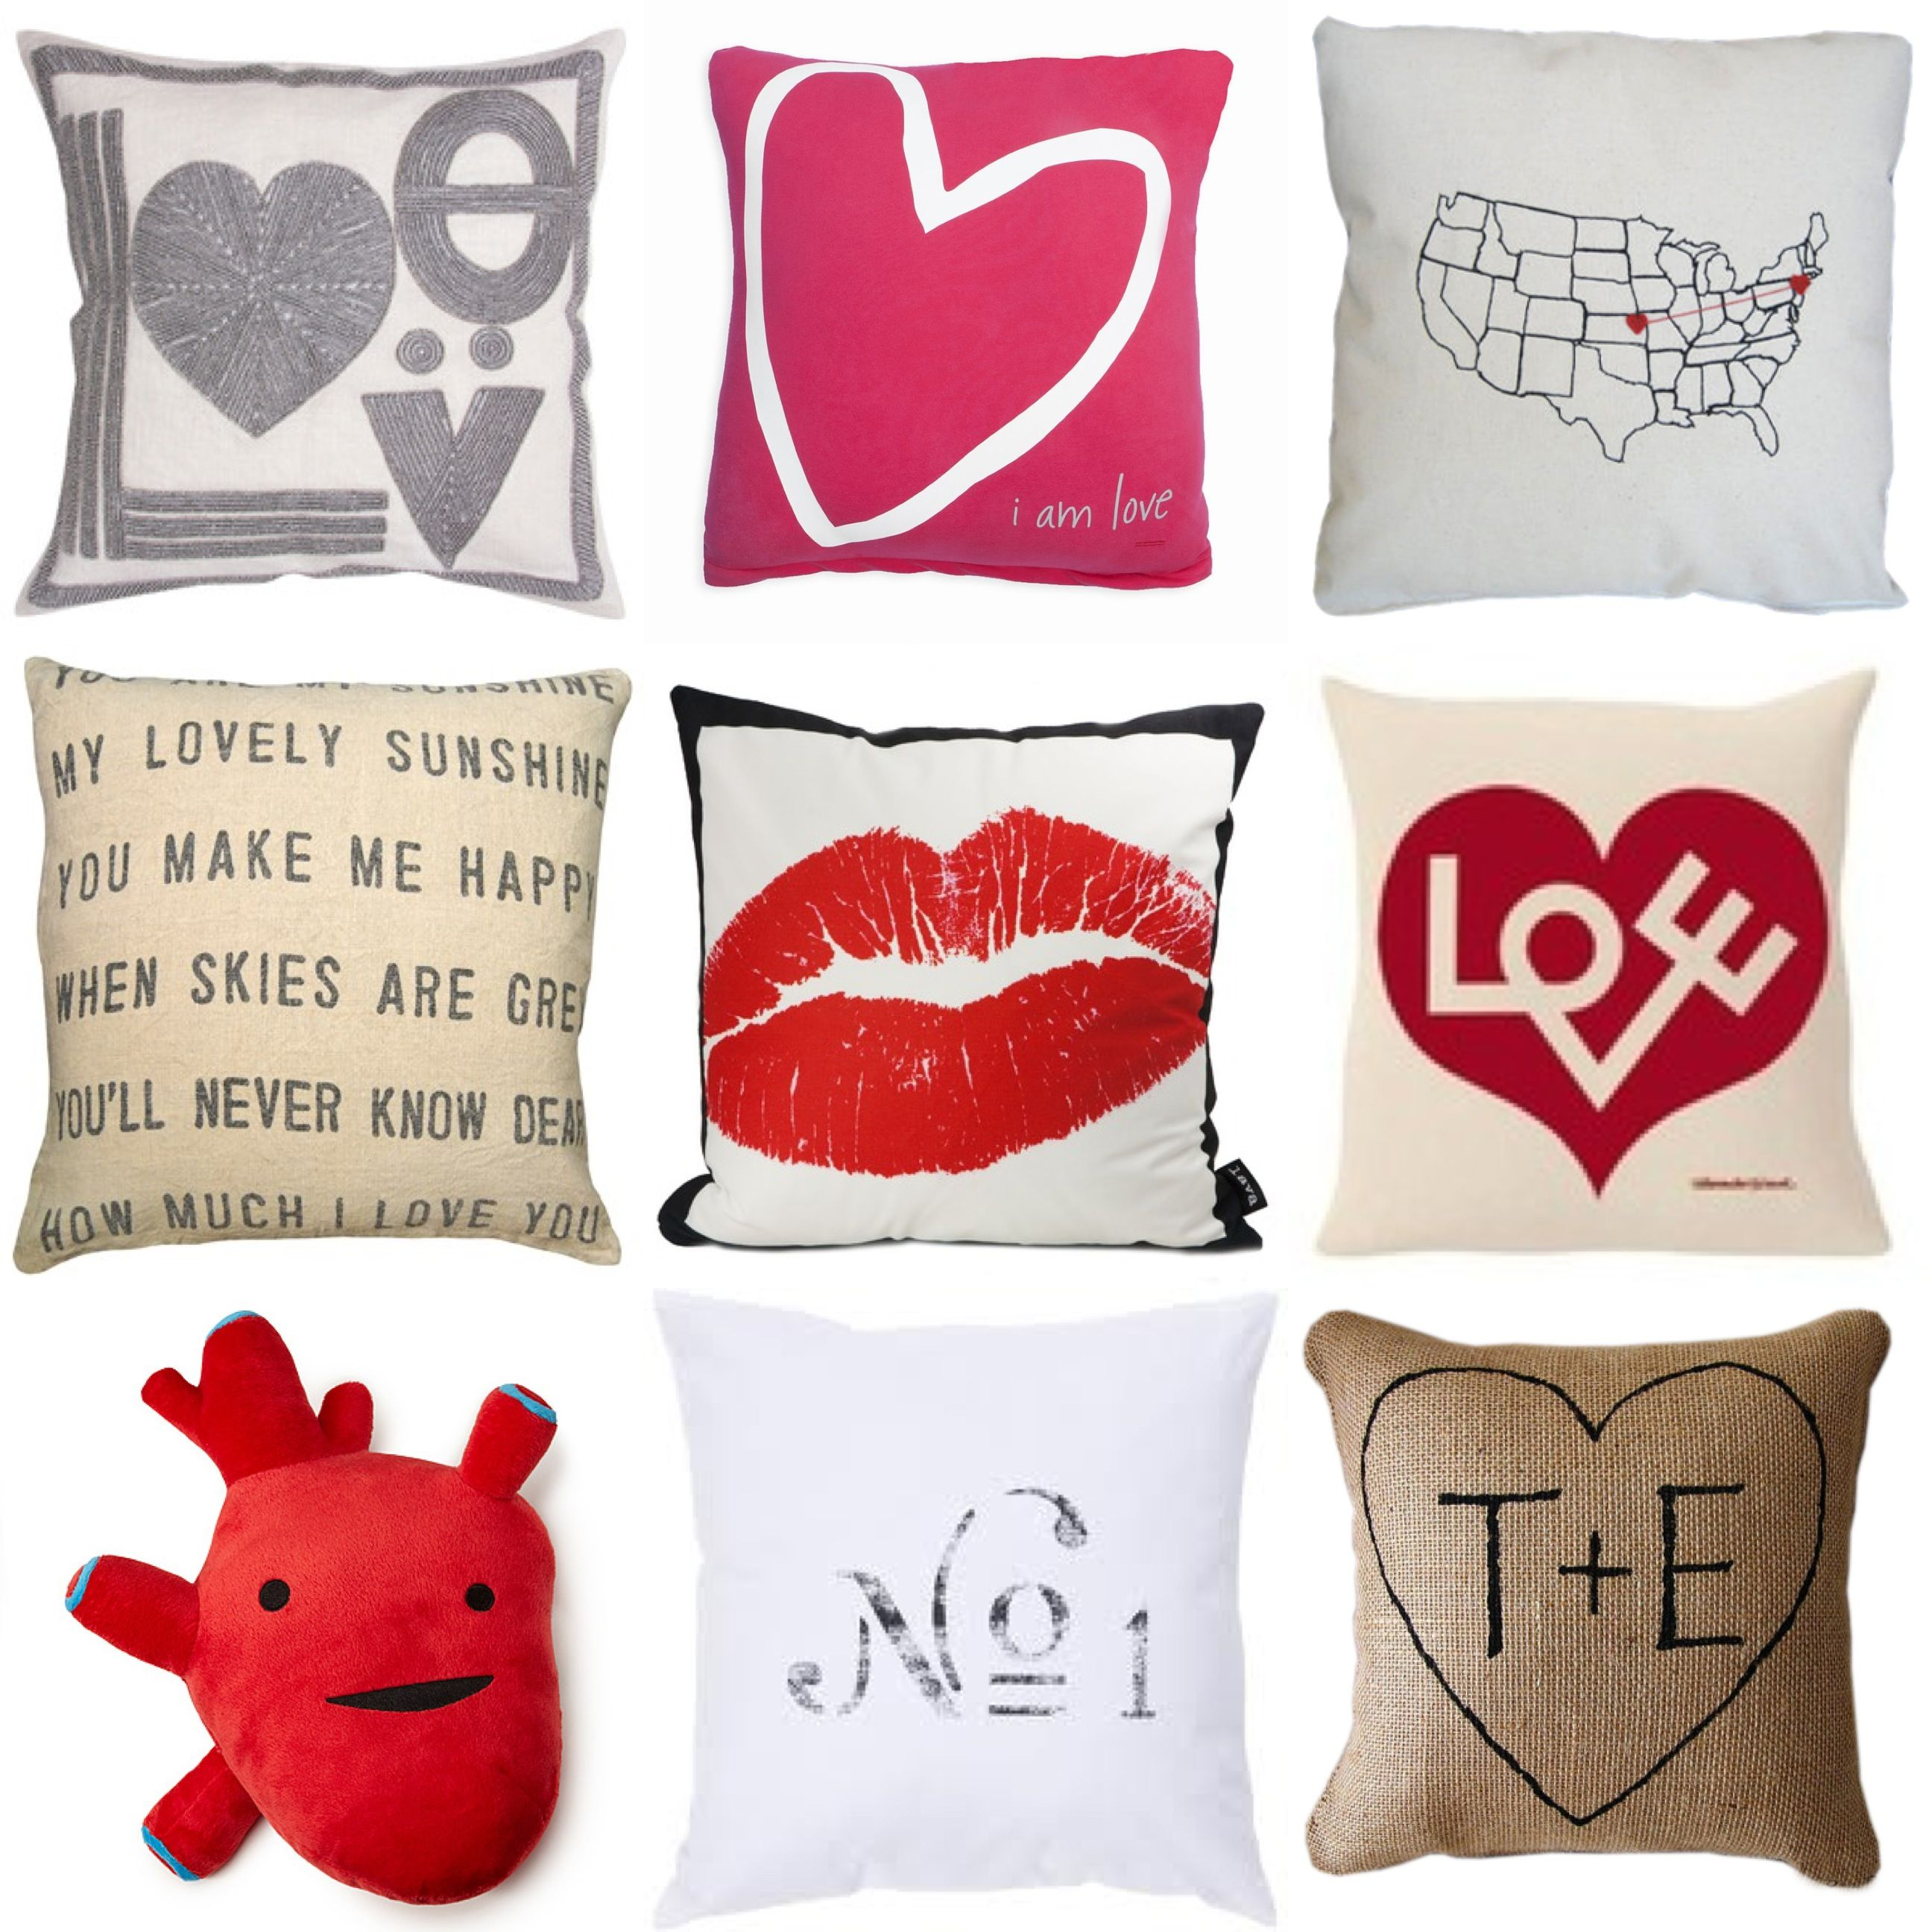 tossing love around with valentines day themed pillows gina - Valentine Pillow